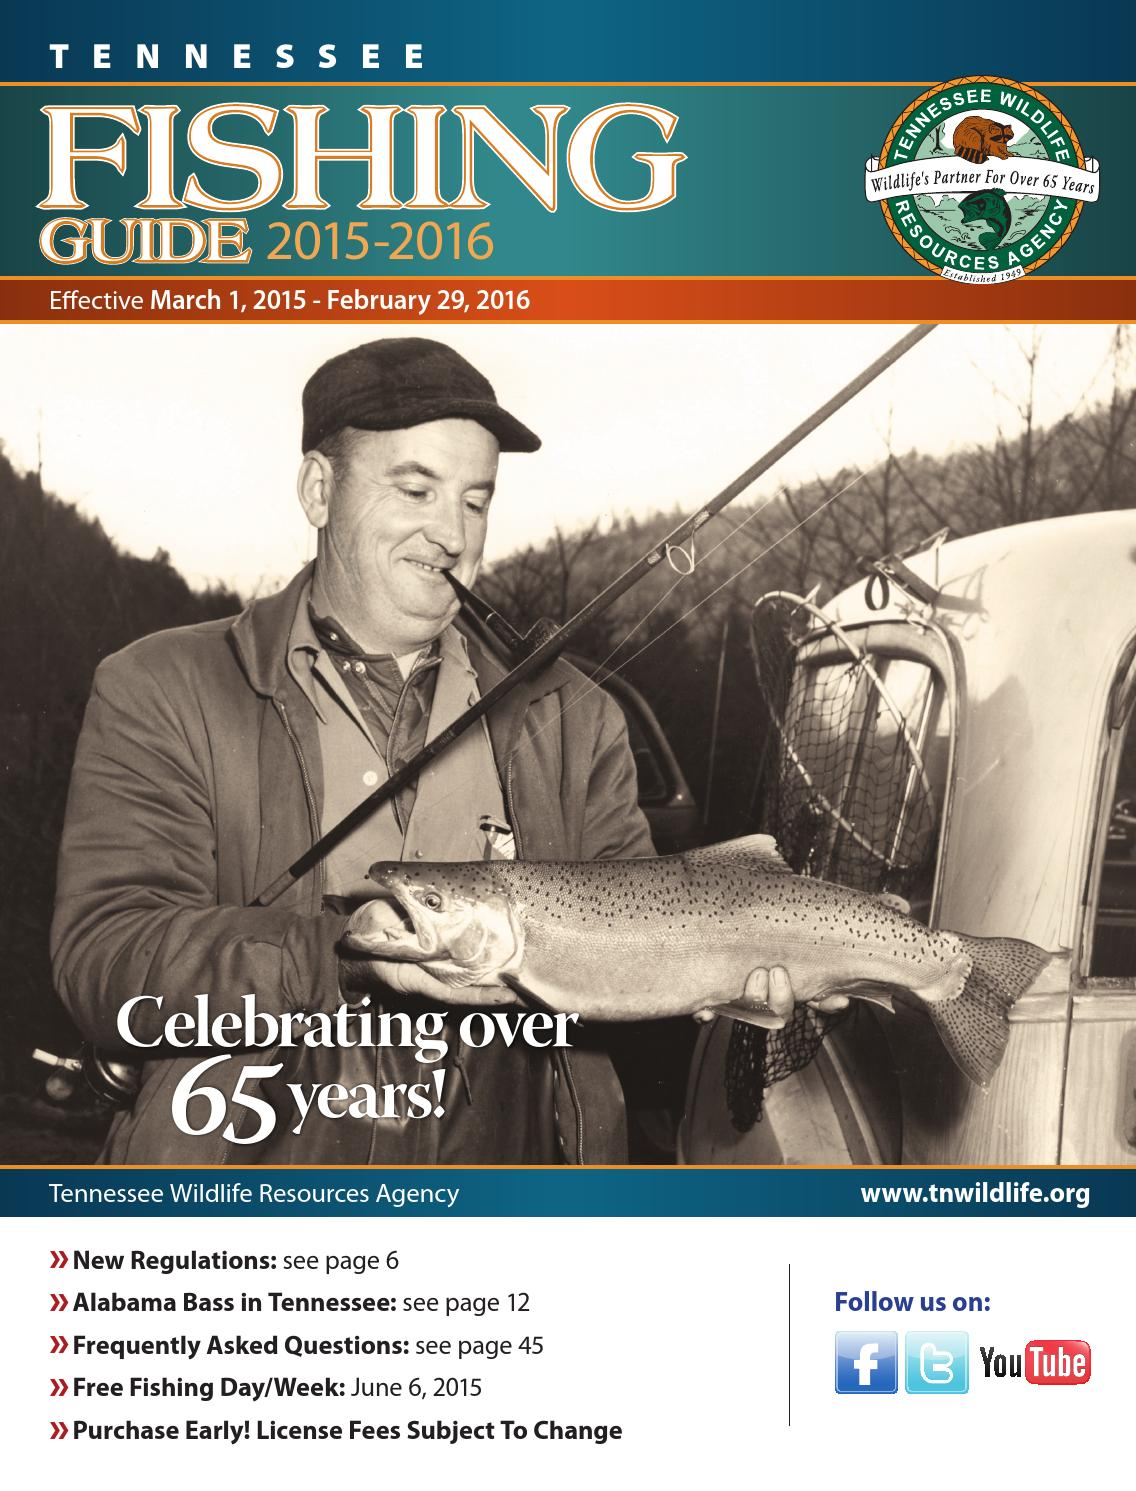 Tn fishing guide 2015 2016 by bingham group issuu for Tennessee fishing guide